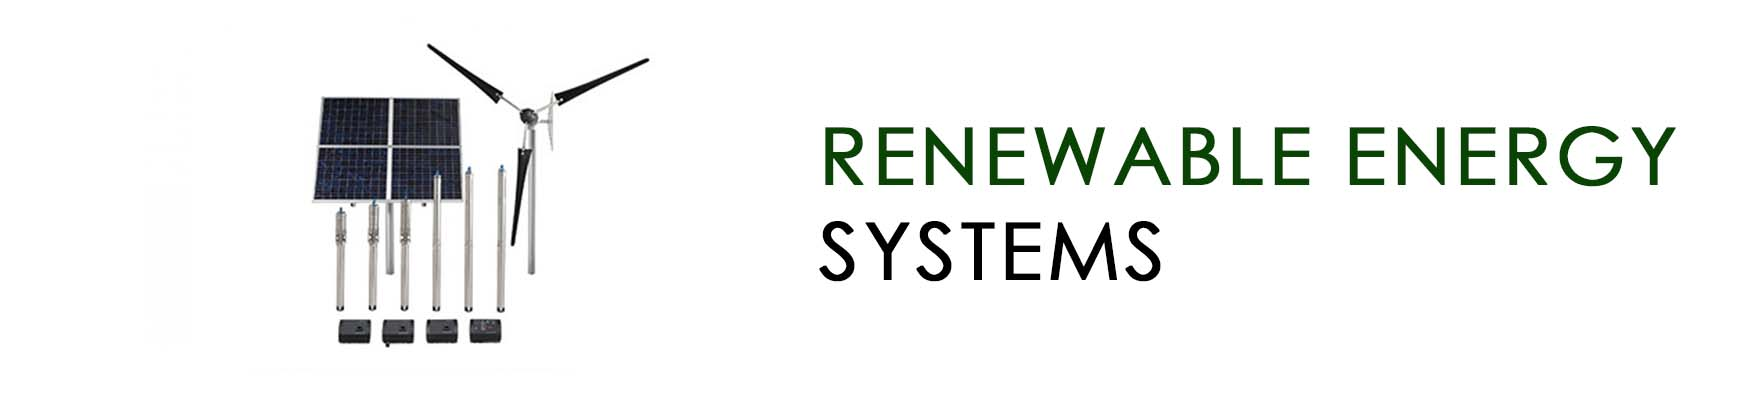 Renewable energy systems BANNER